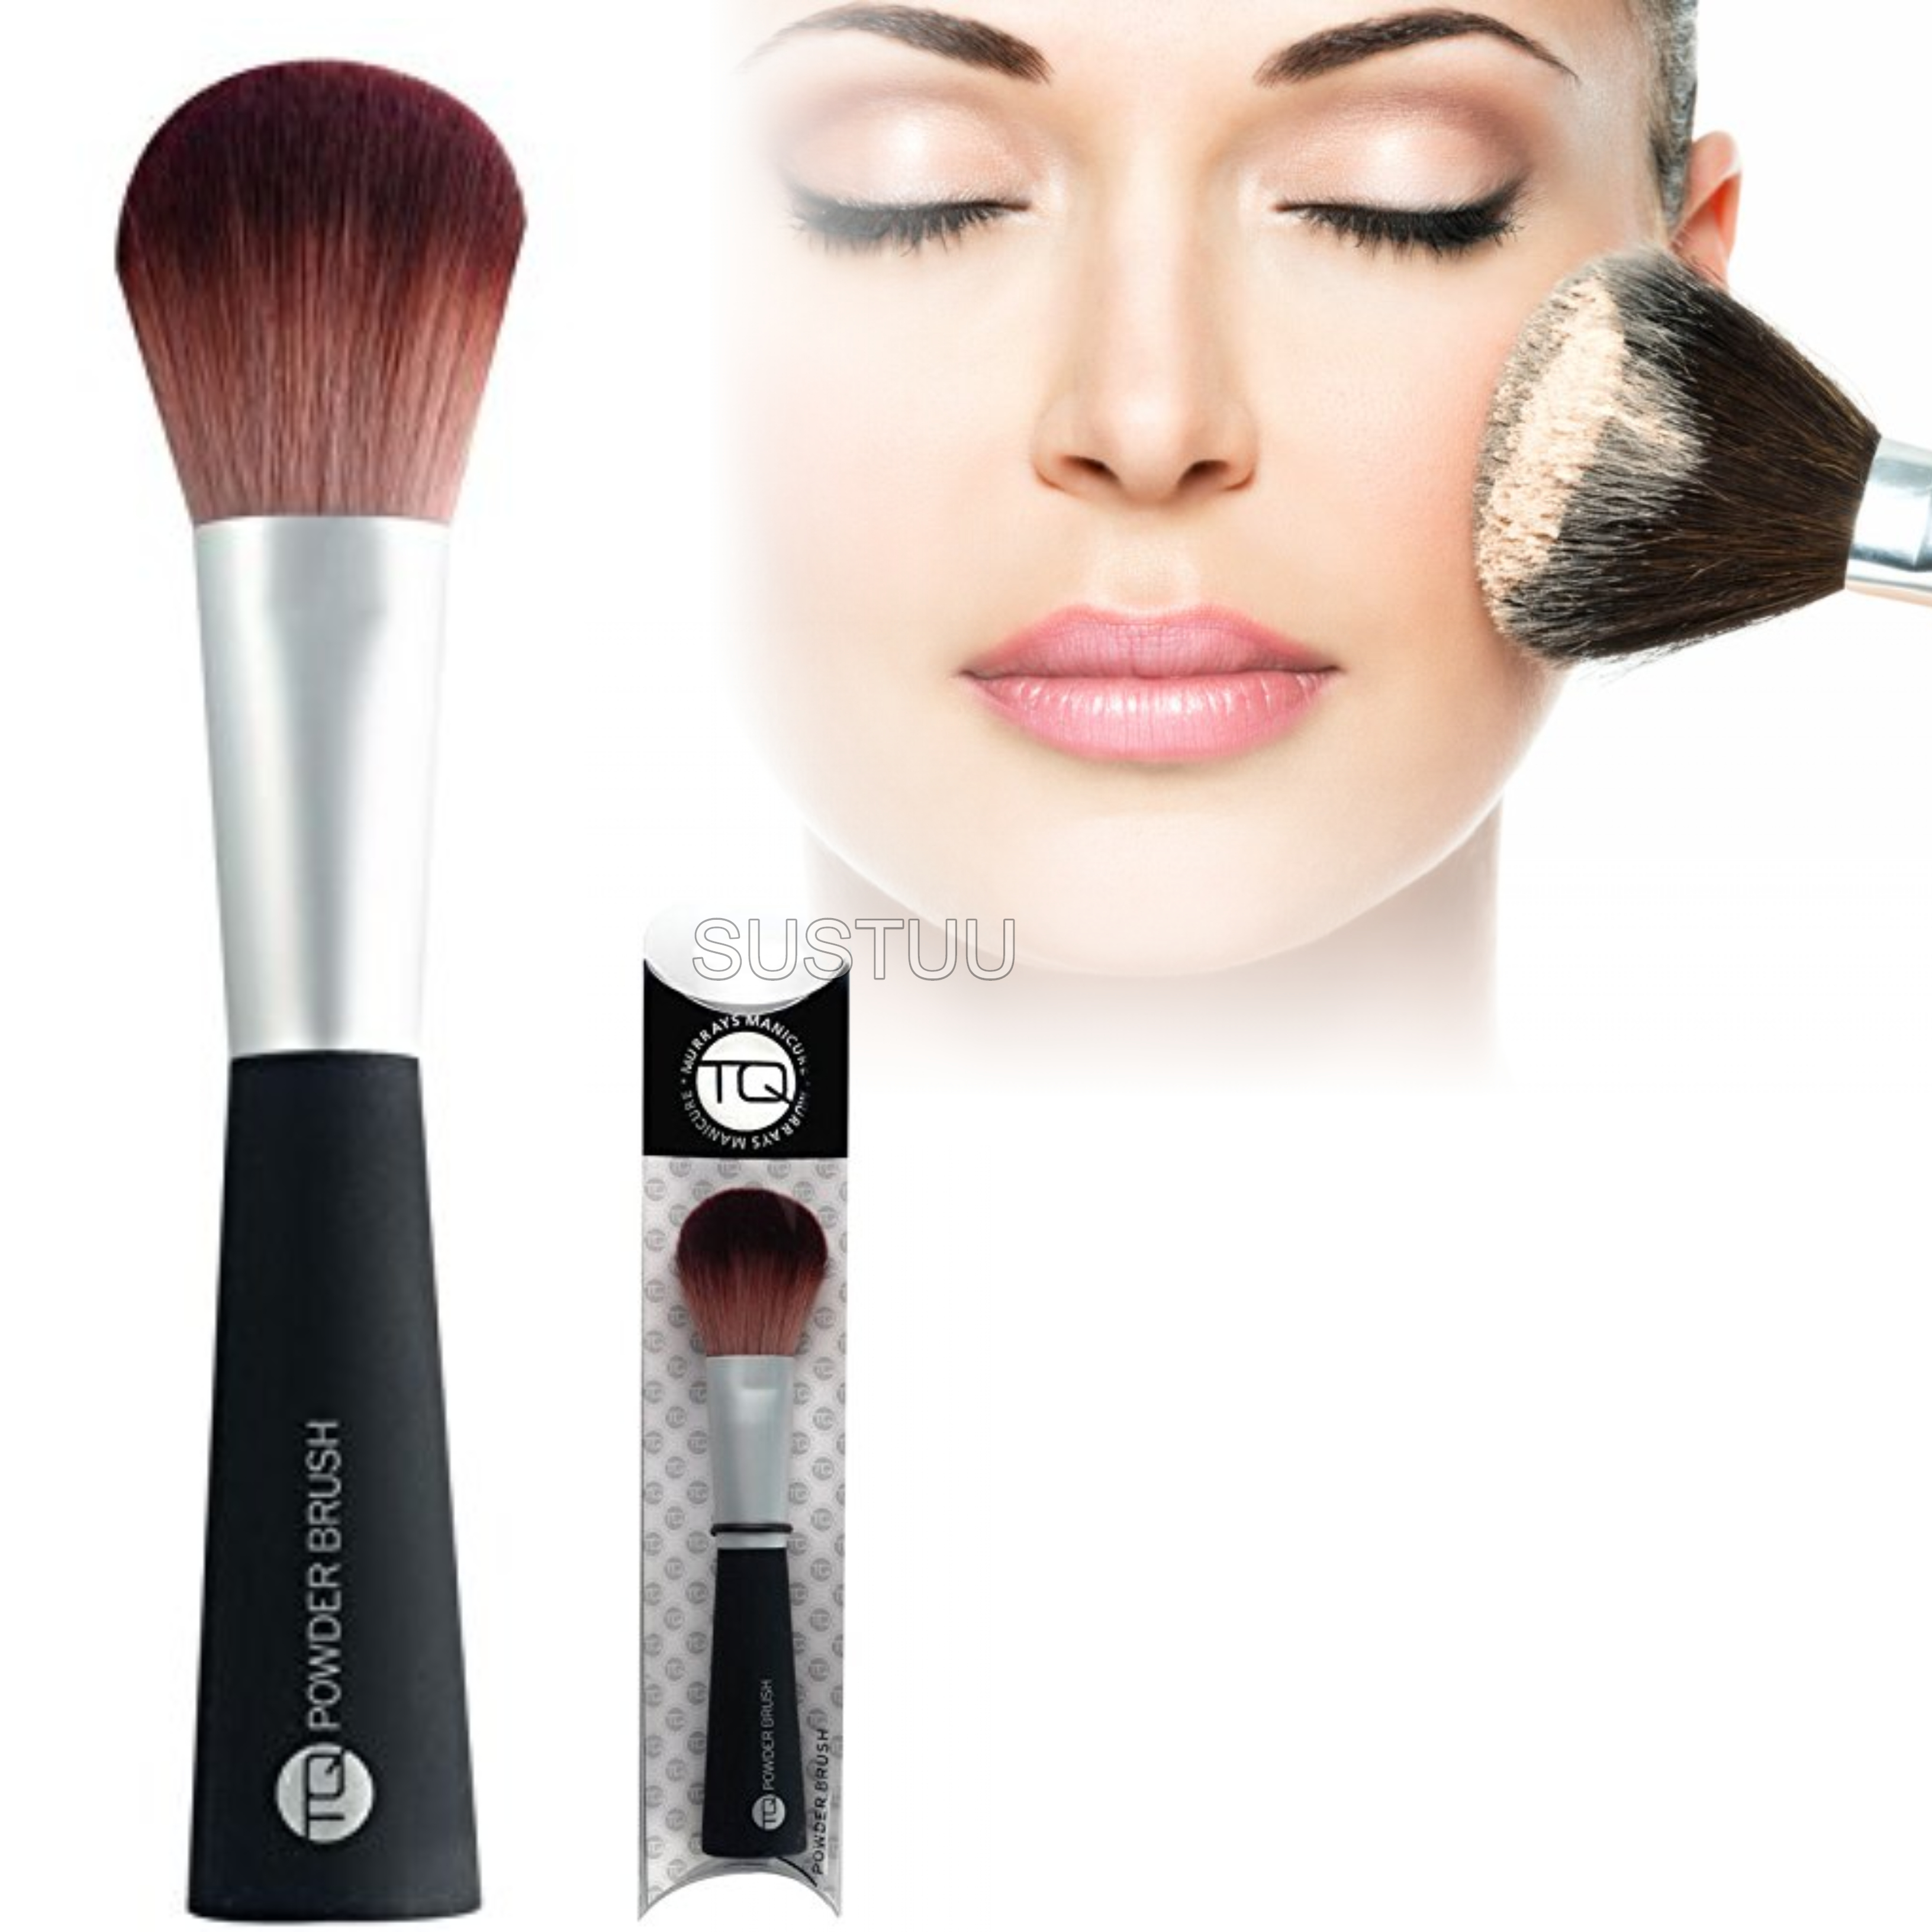 TQ Large Powder Brush|for Loose or Compact Powder|Makeup & Blending Foundation|